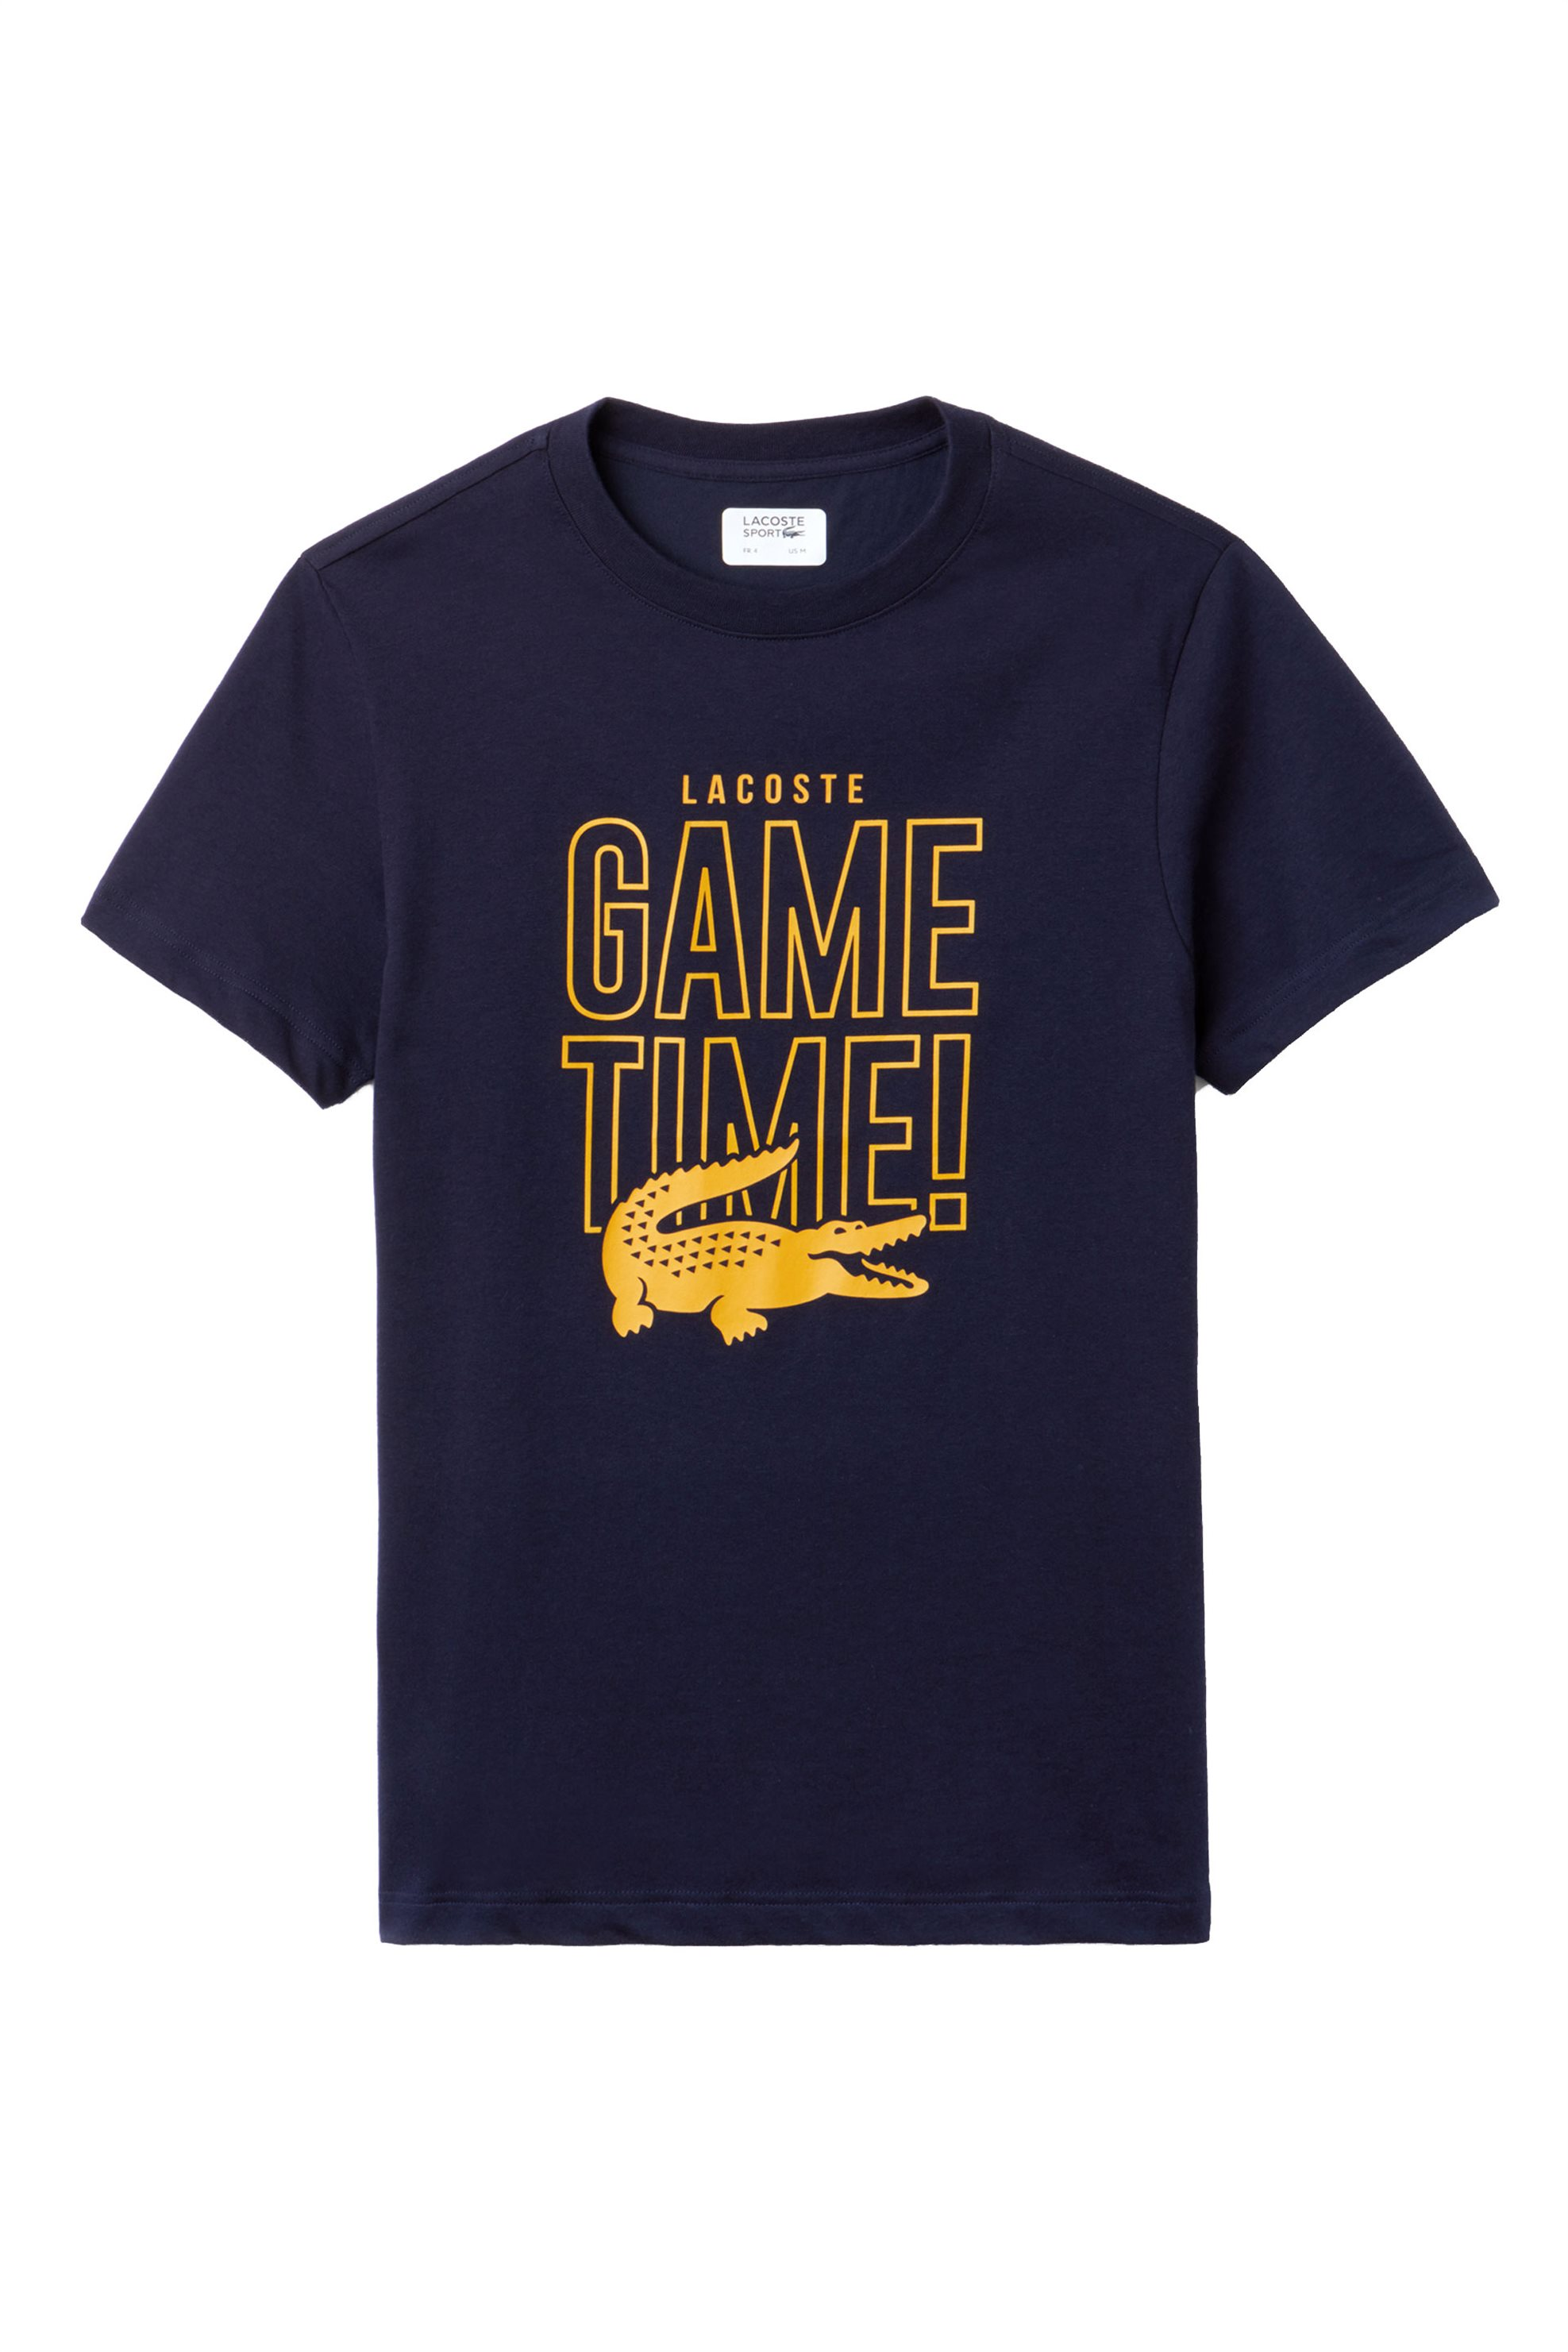 Lacoste ανδρικό T-shirt με graphic print και lettering Game Time Lacoste's Tenni ανδρασ   ρουχα   μπλούζες   t shirts